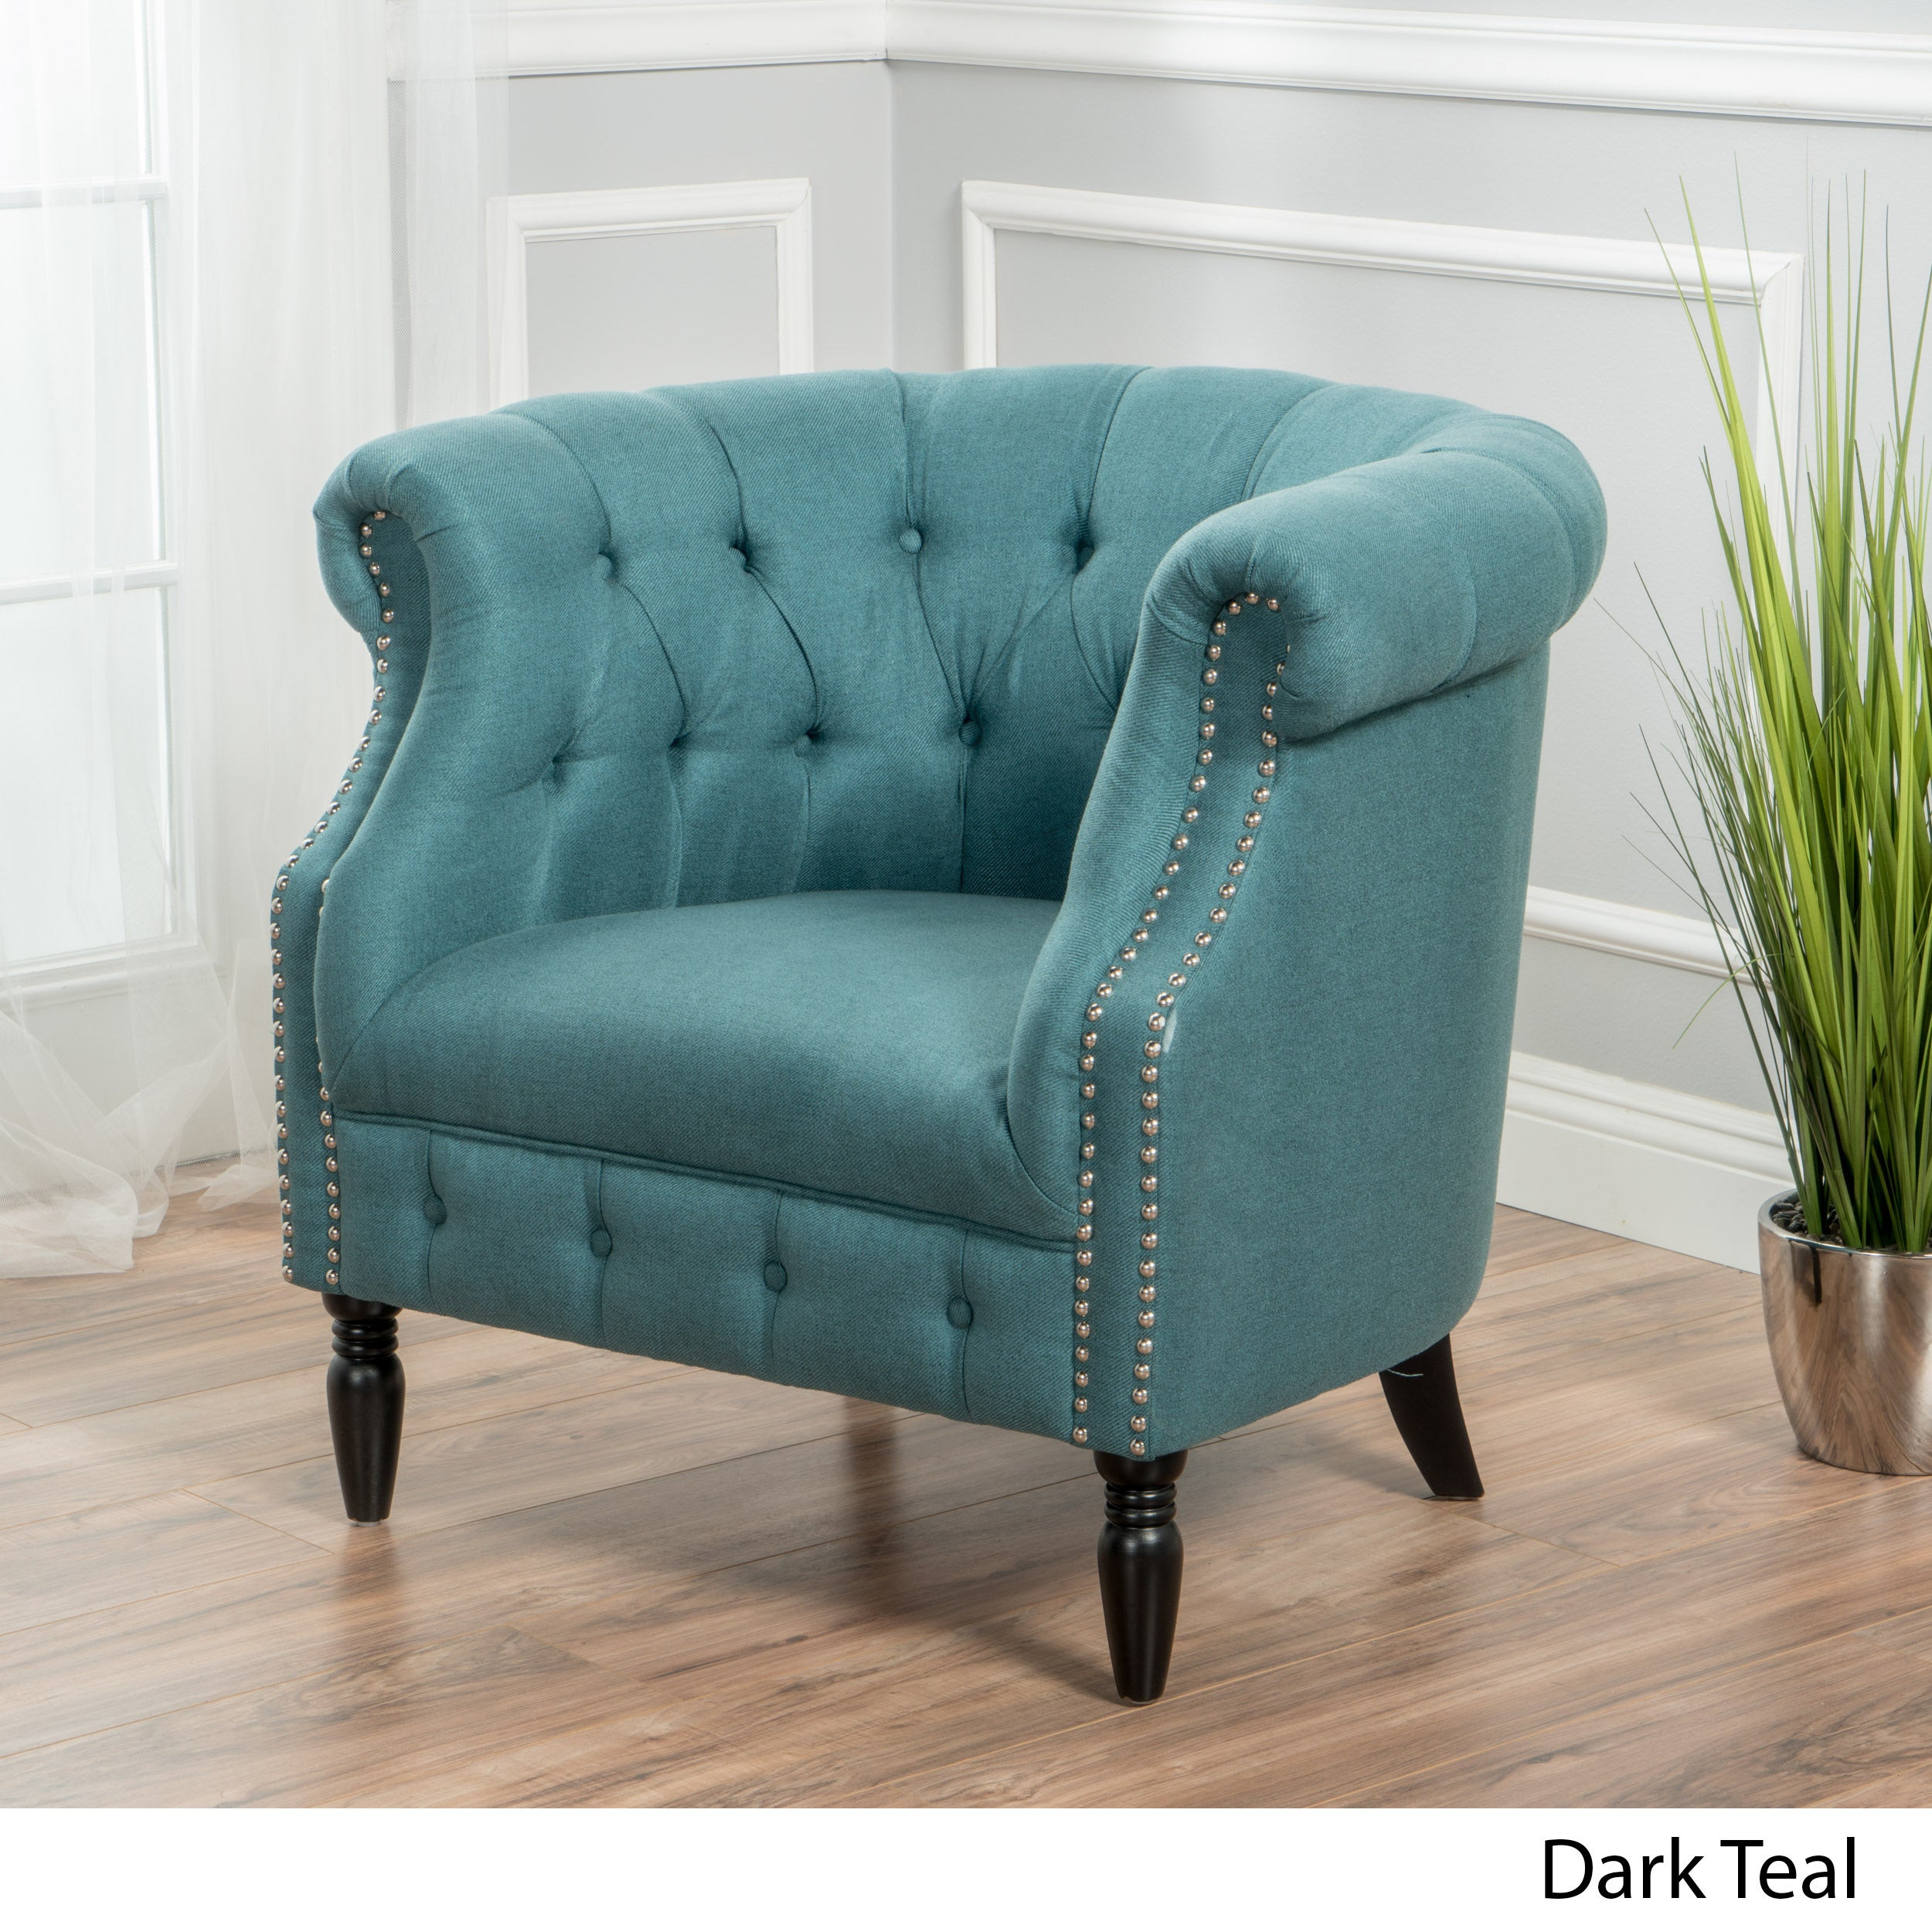 Akira Tufted Fabric Club Chair By Christopher Knight Home   Free Shipping  Today   Overstock   20008395